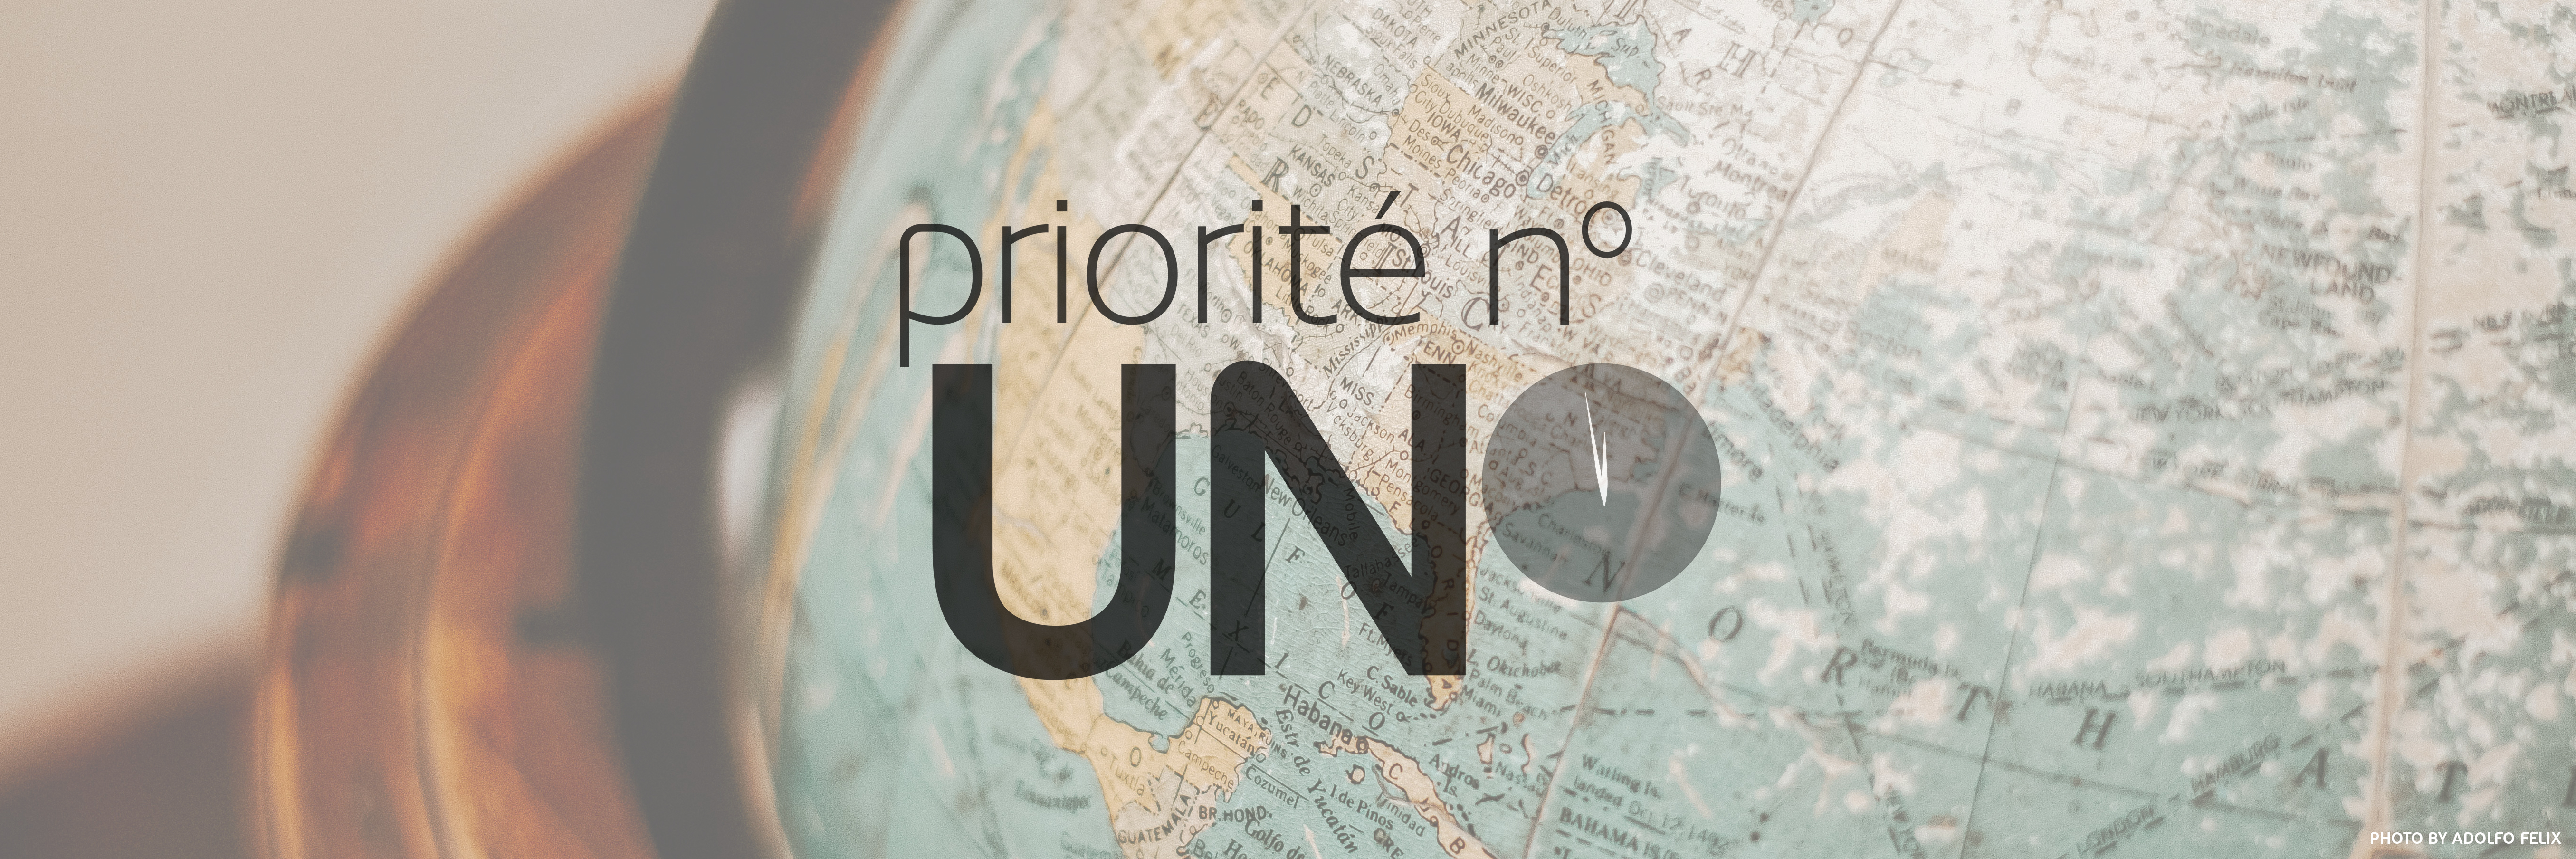 Priority ONE French logo with a world map behind it